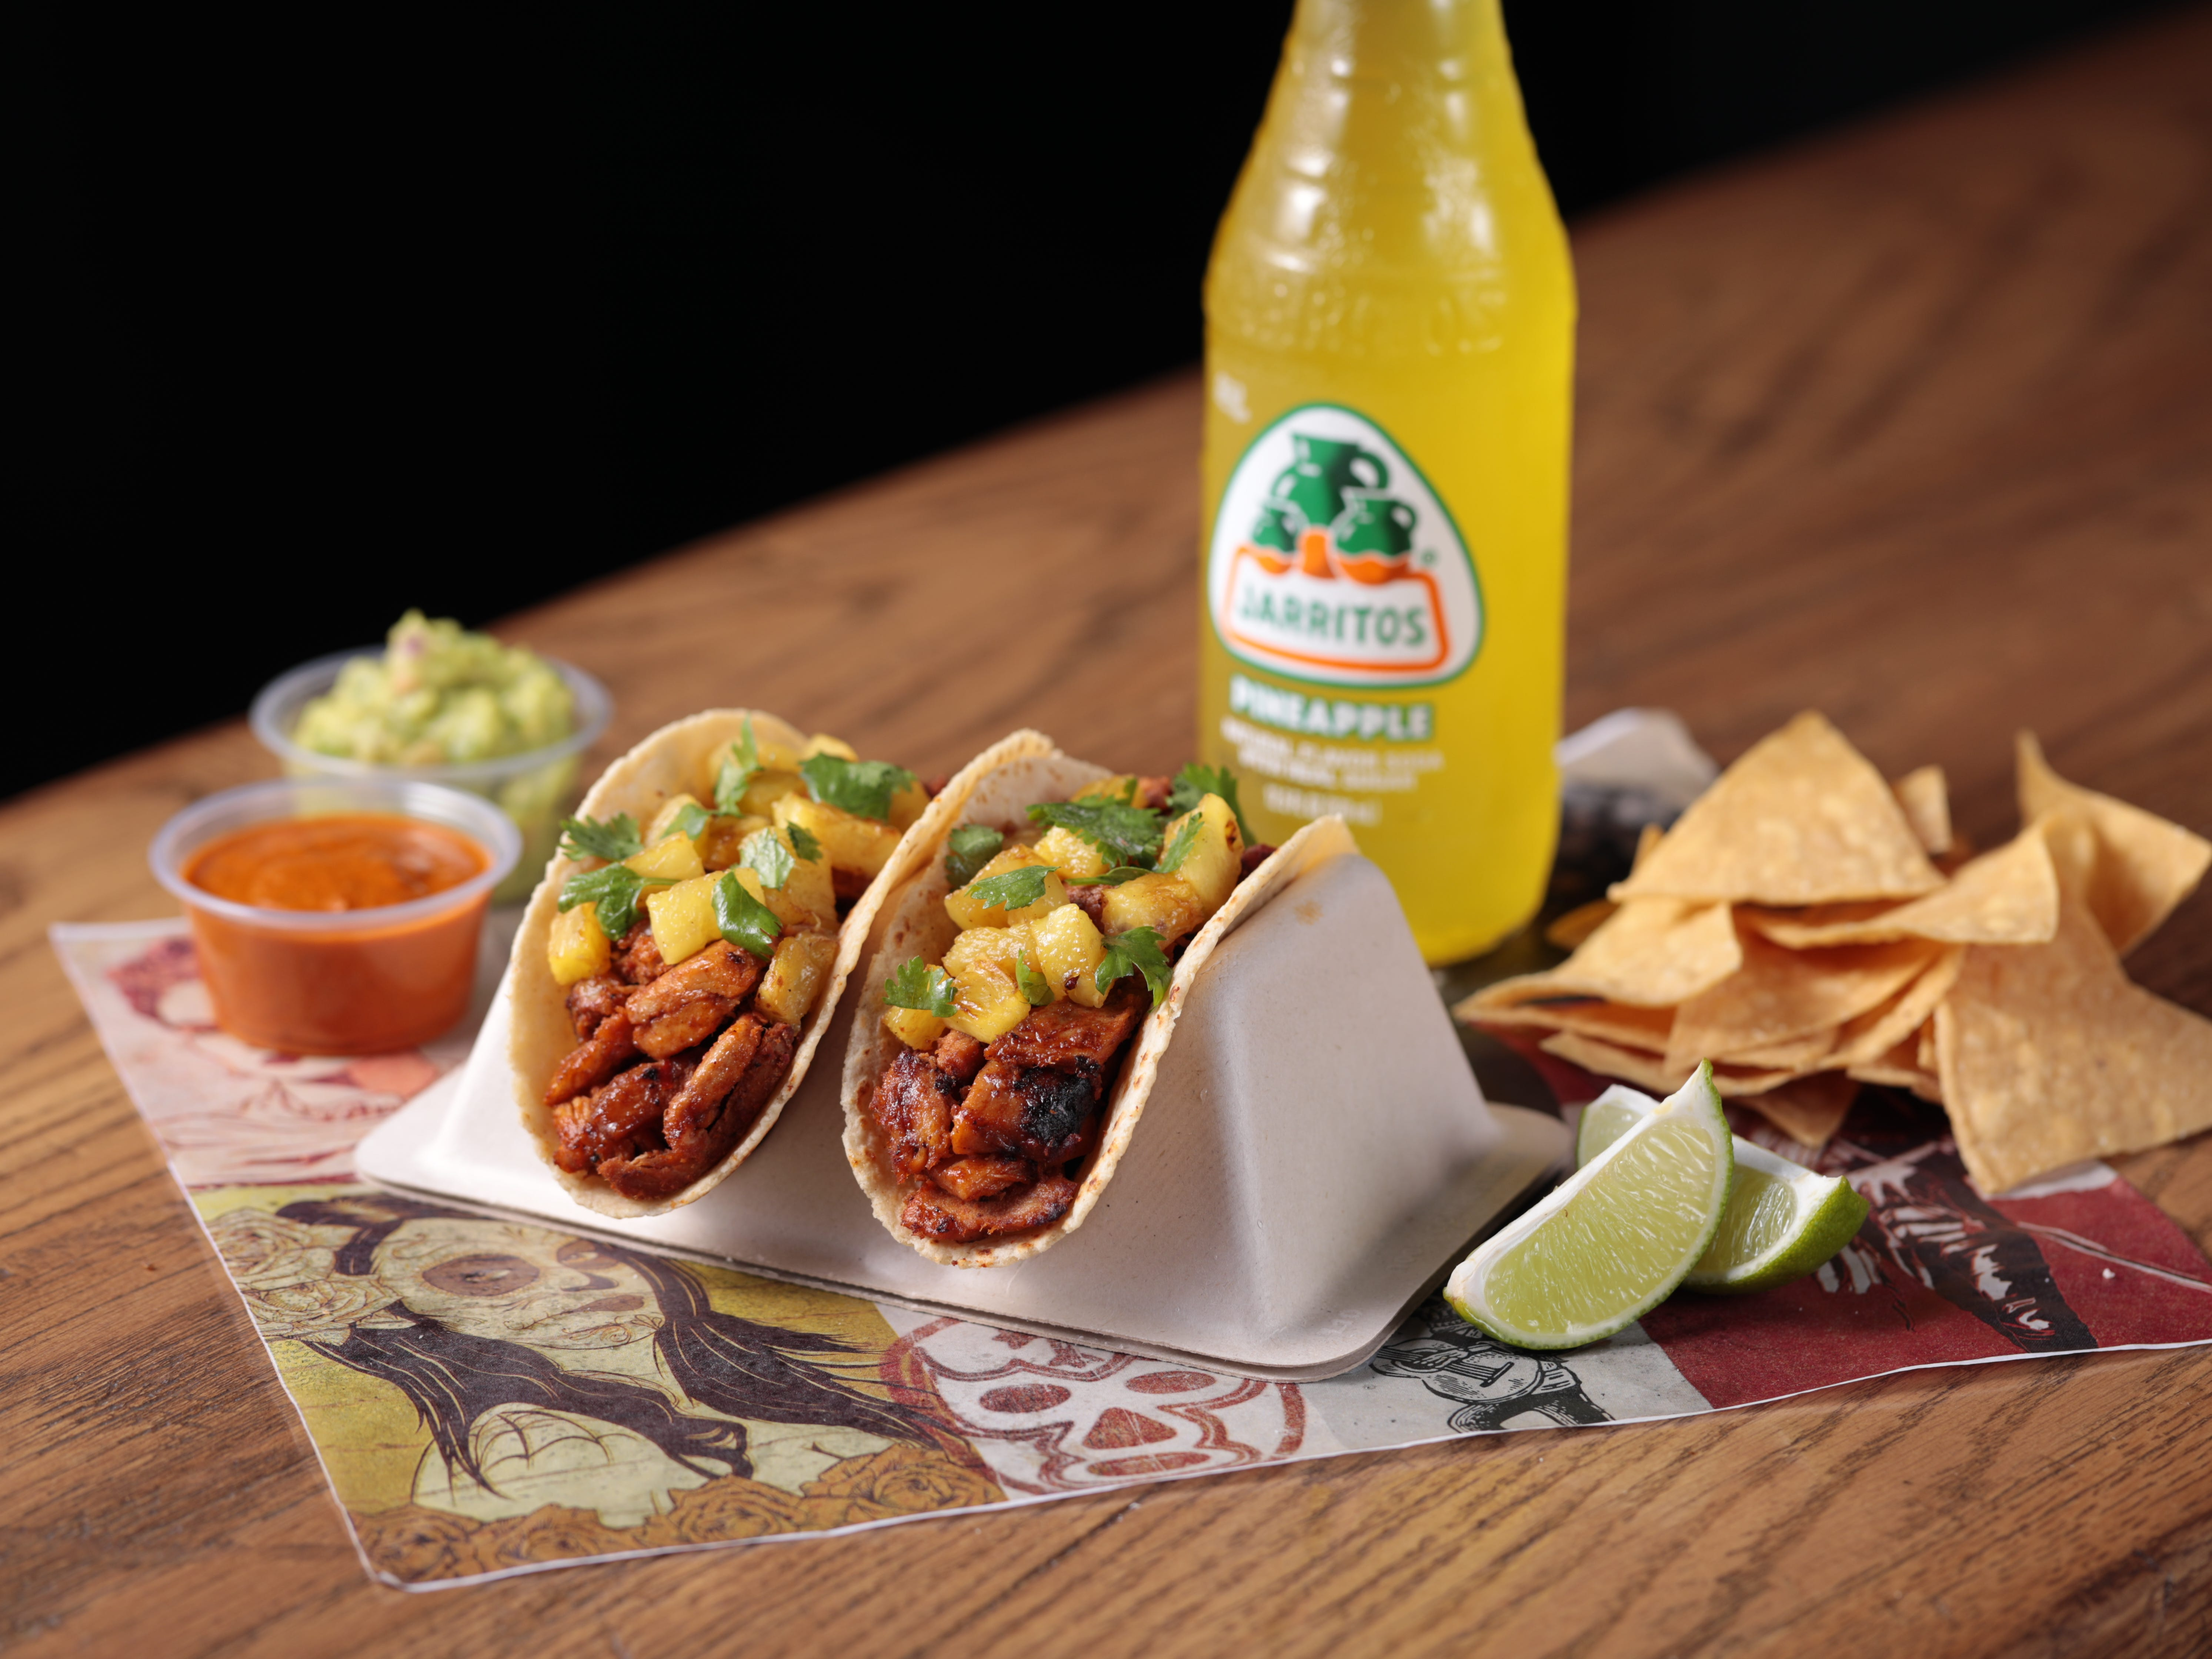 The taco duo is among the customizable dishes at the fast-casual George Lopez's Chingon Kitchen at Vee Quiva Hotel & Casino.